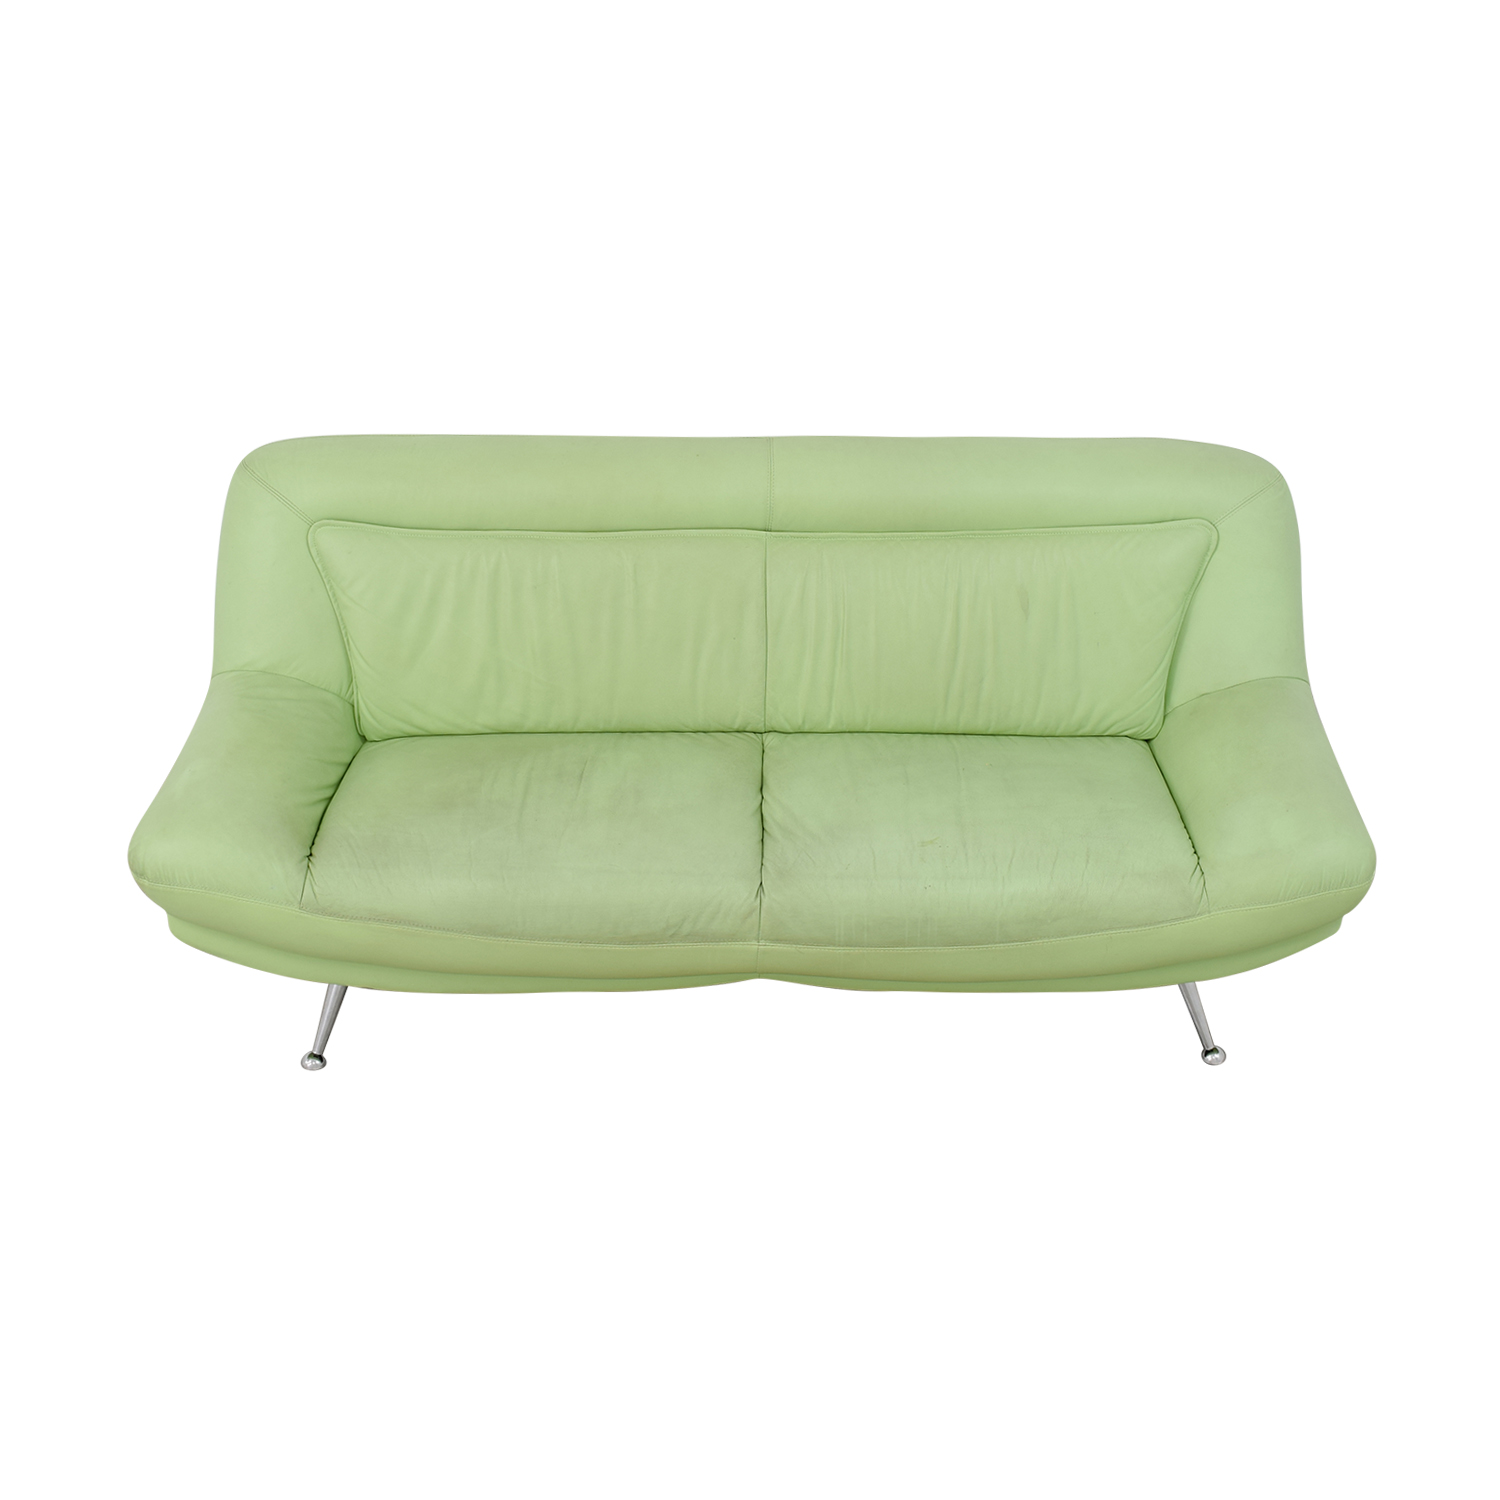 Seafoam Green Home Decor Mint Green Leather Sofa Crate Barrel Lounge 83 Sofa And